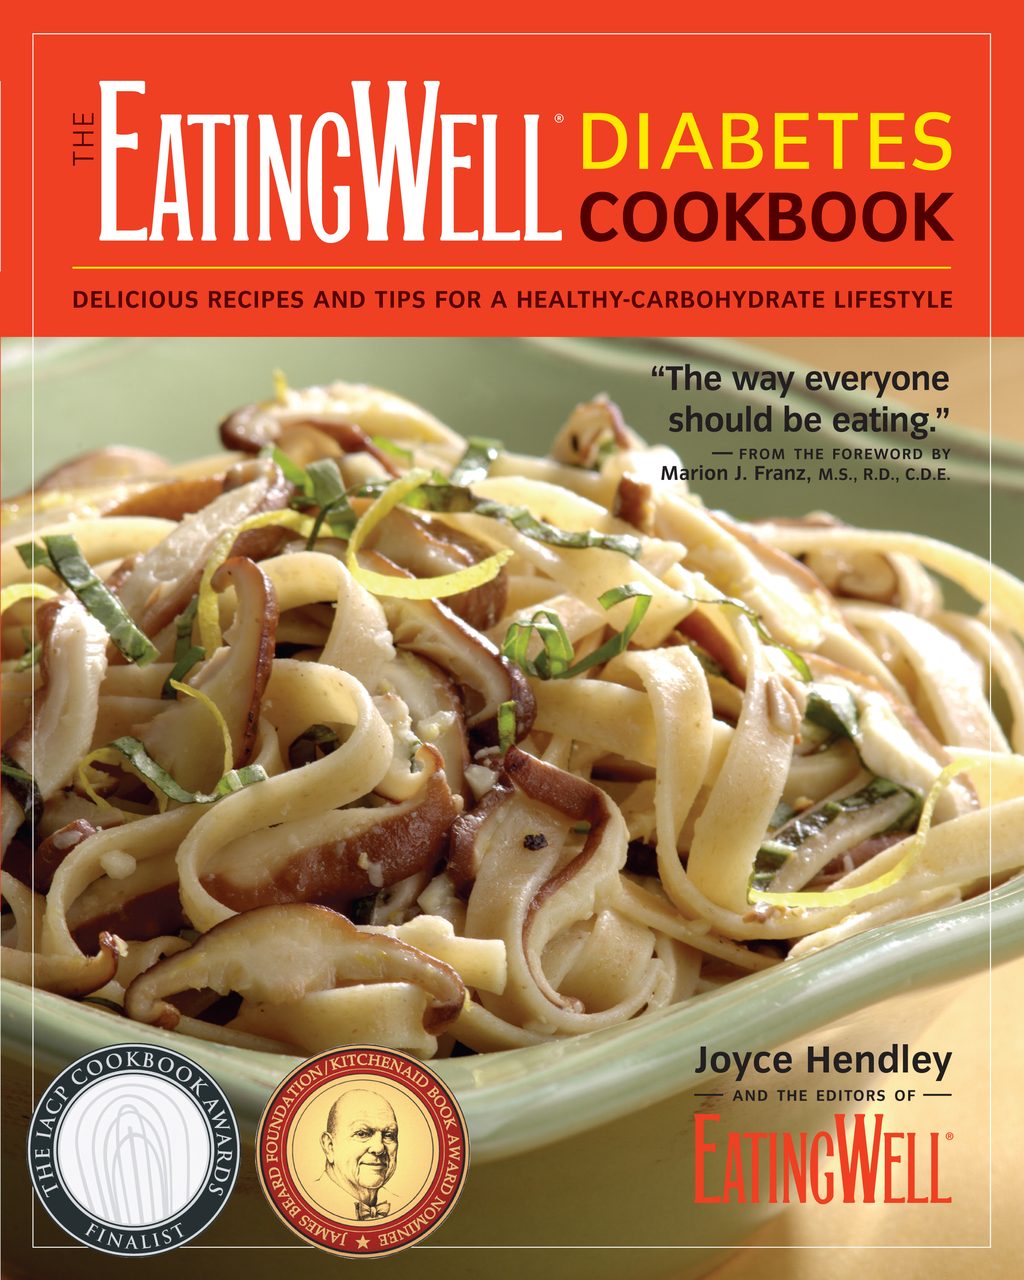 The EatingWell Diabetes Cookbook: Delicious Recipes and Tips for a Healthy-Carbohydrate Lifestyle (EatingWell)